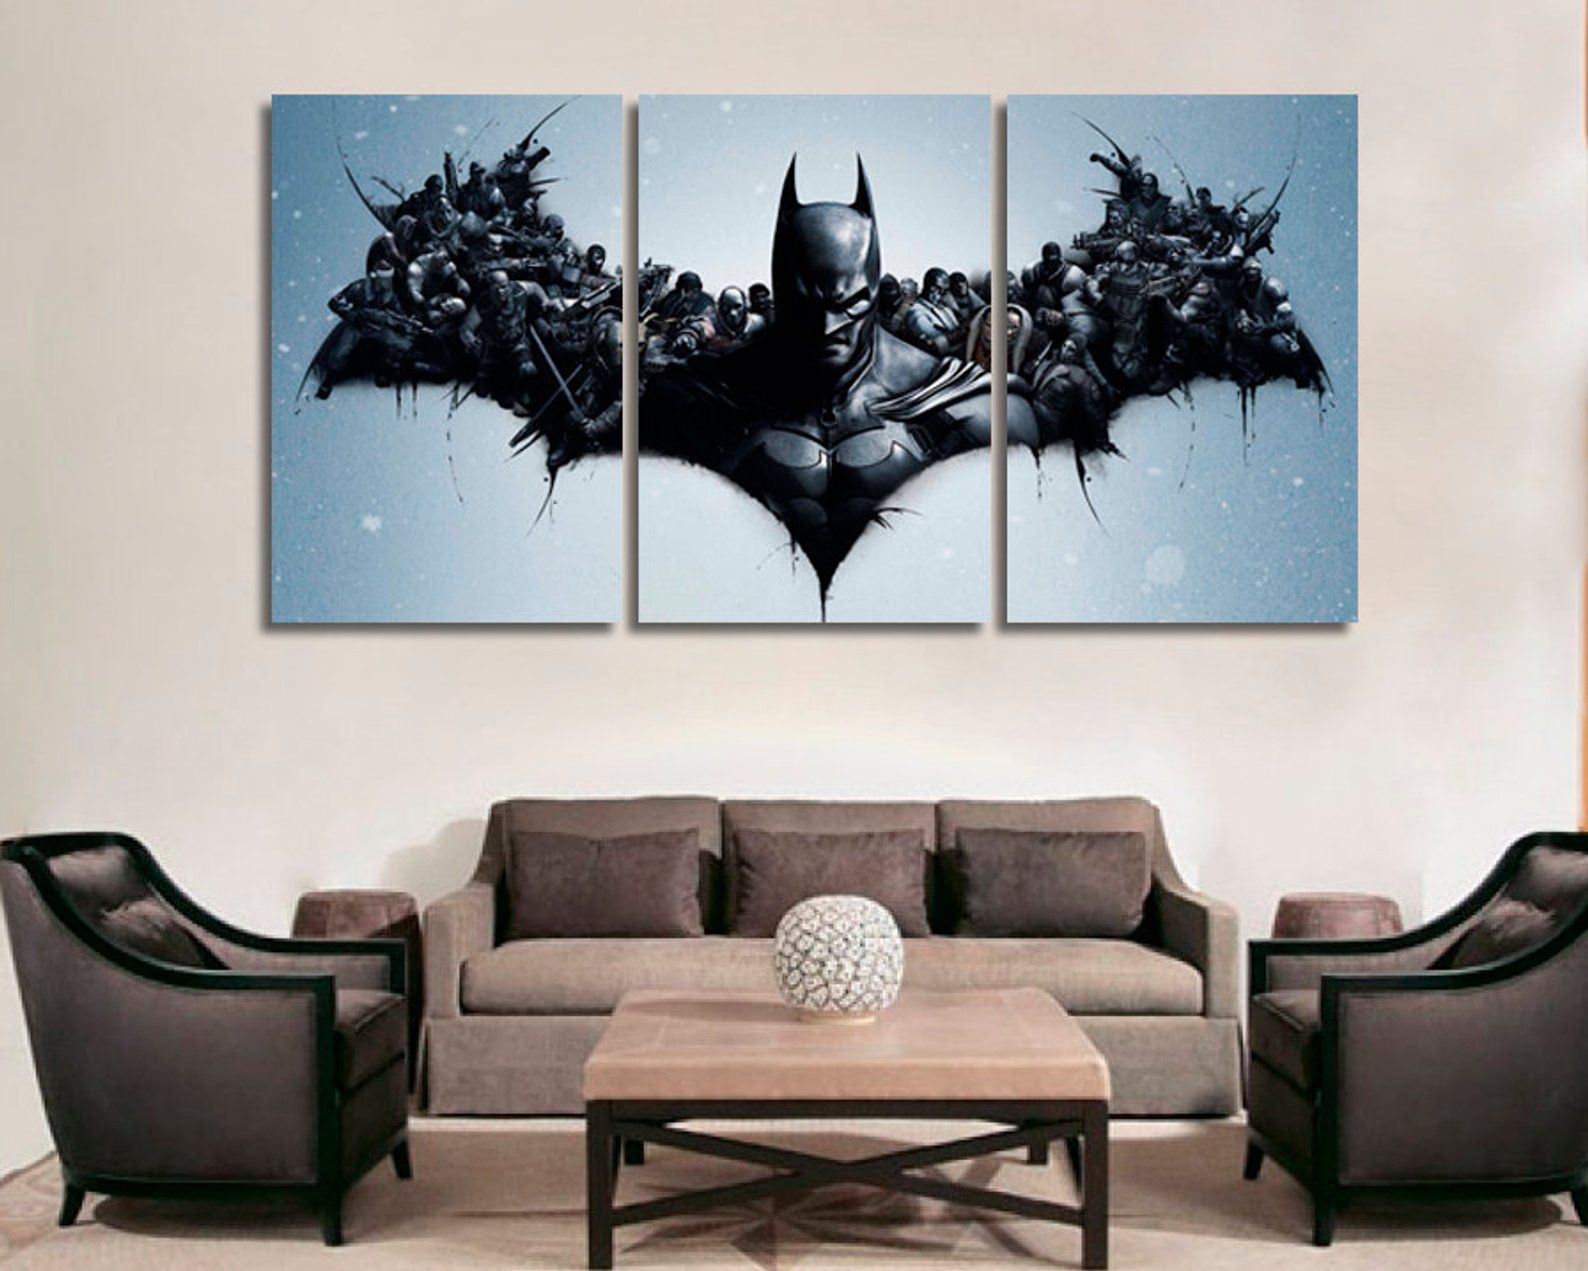 Superman poster wall art home decoration photo print 24x24 inches